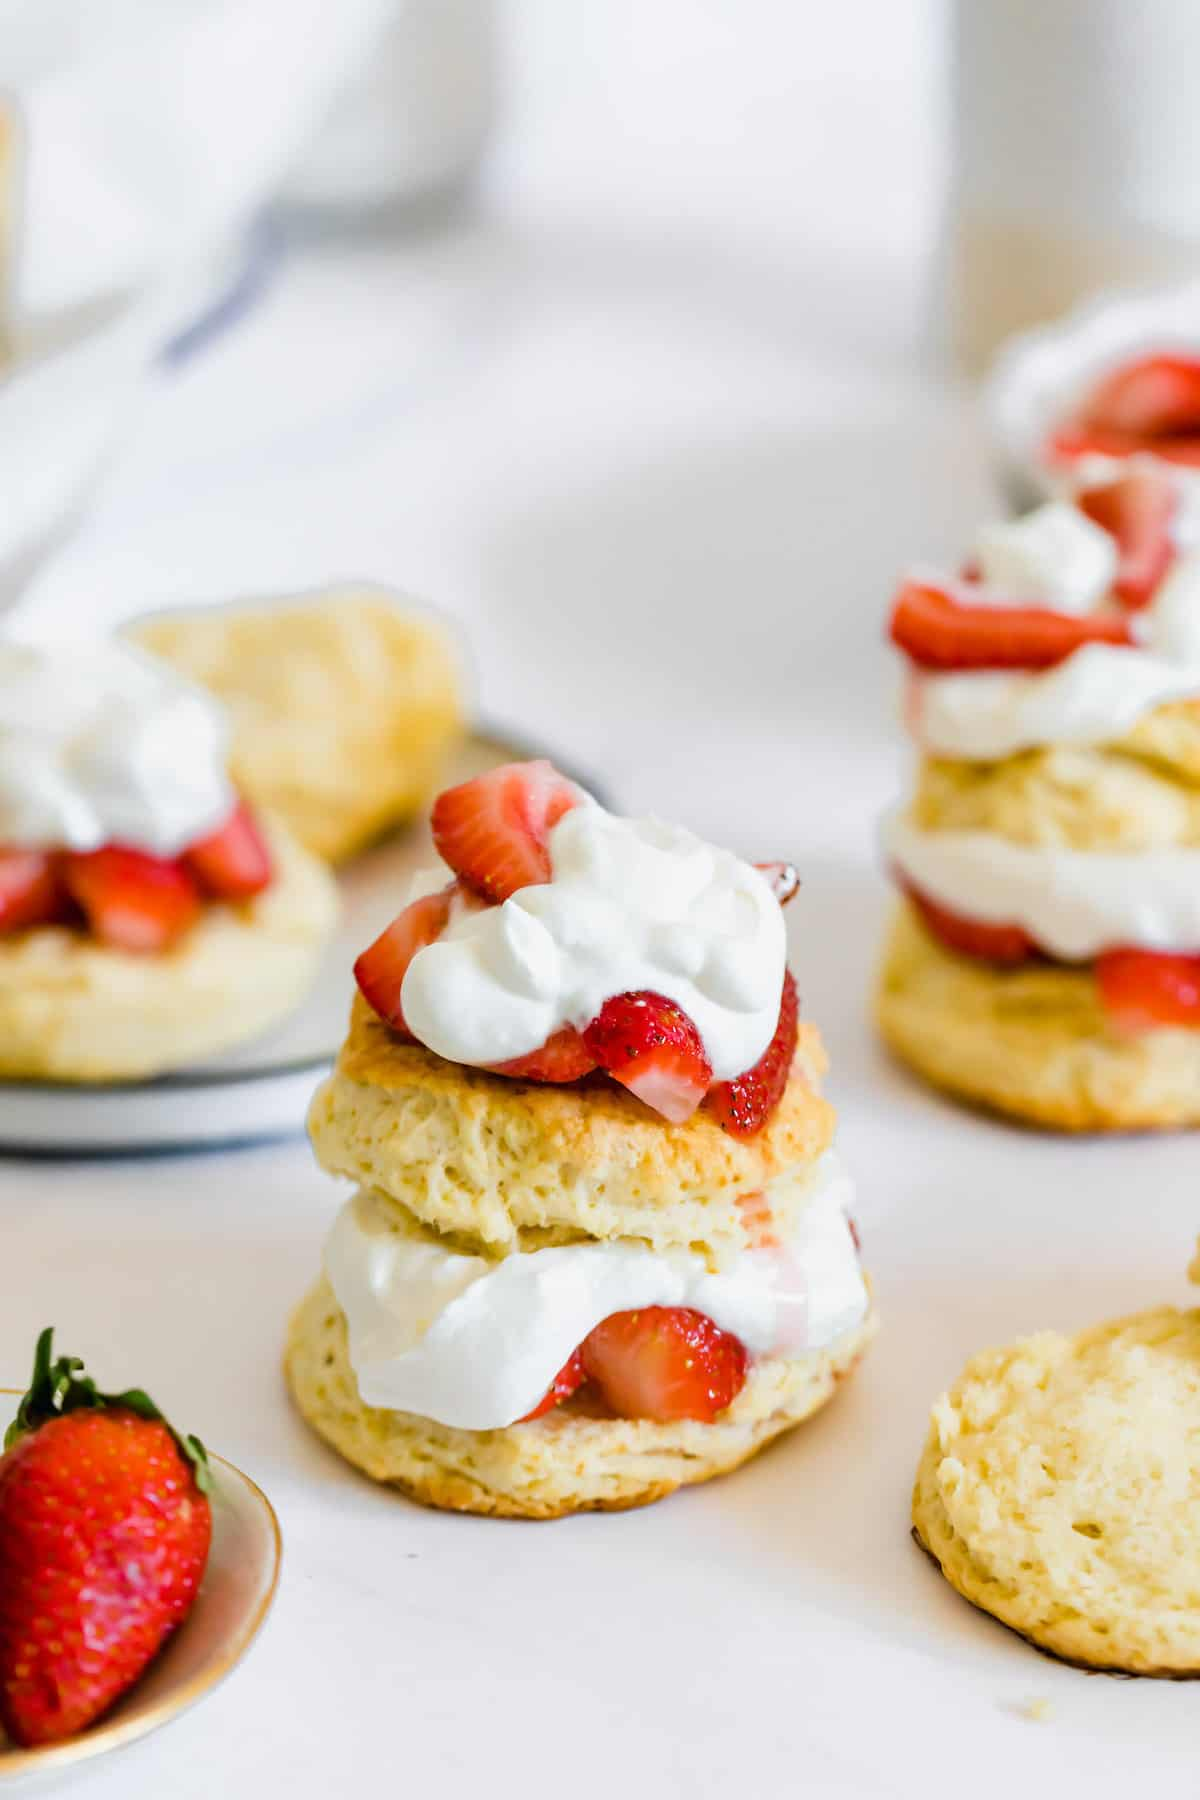 Strawberry Shortcakes with Homemade Whipped Cream on a White Countertop